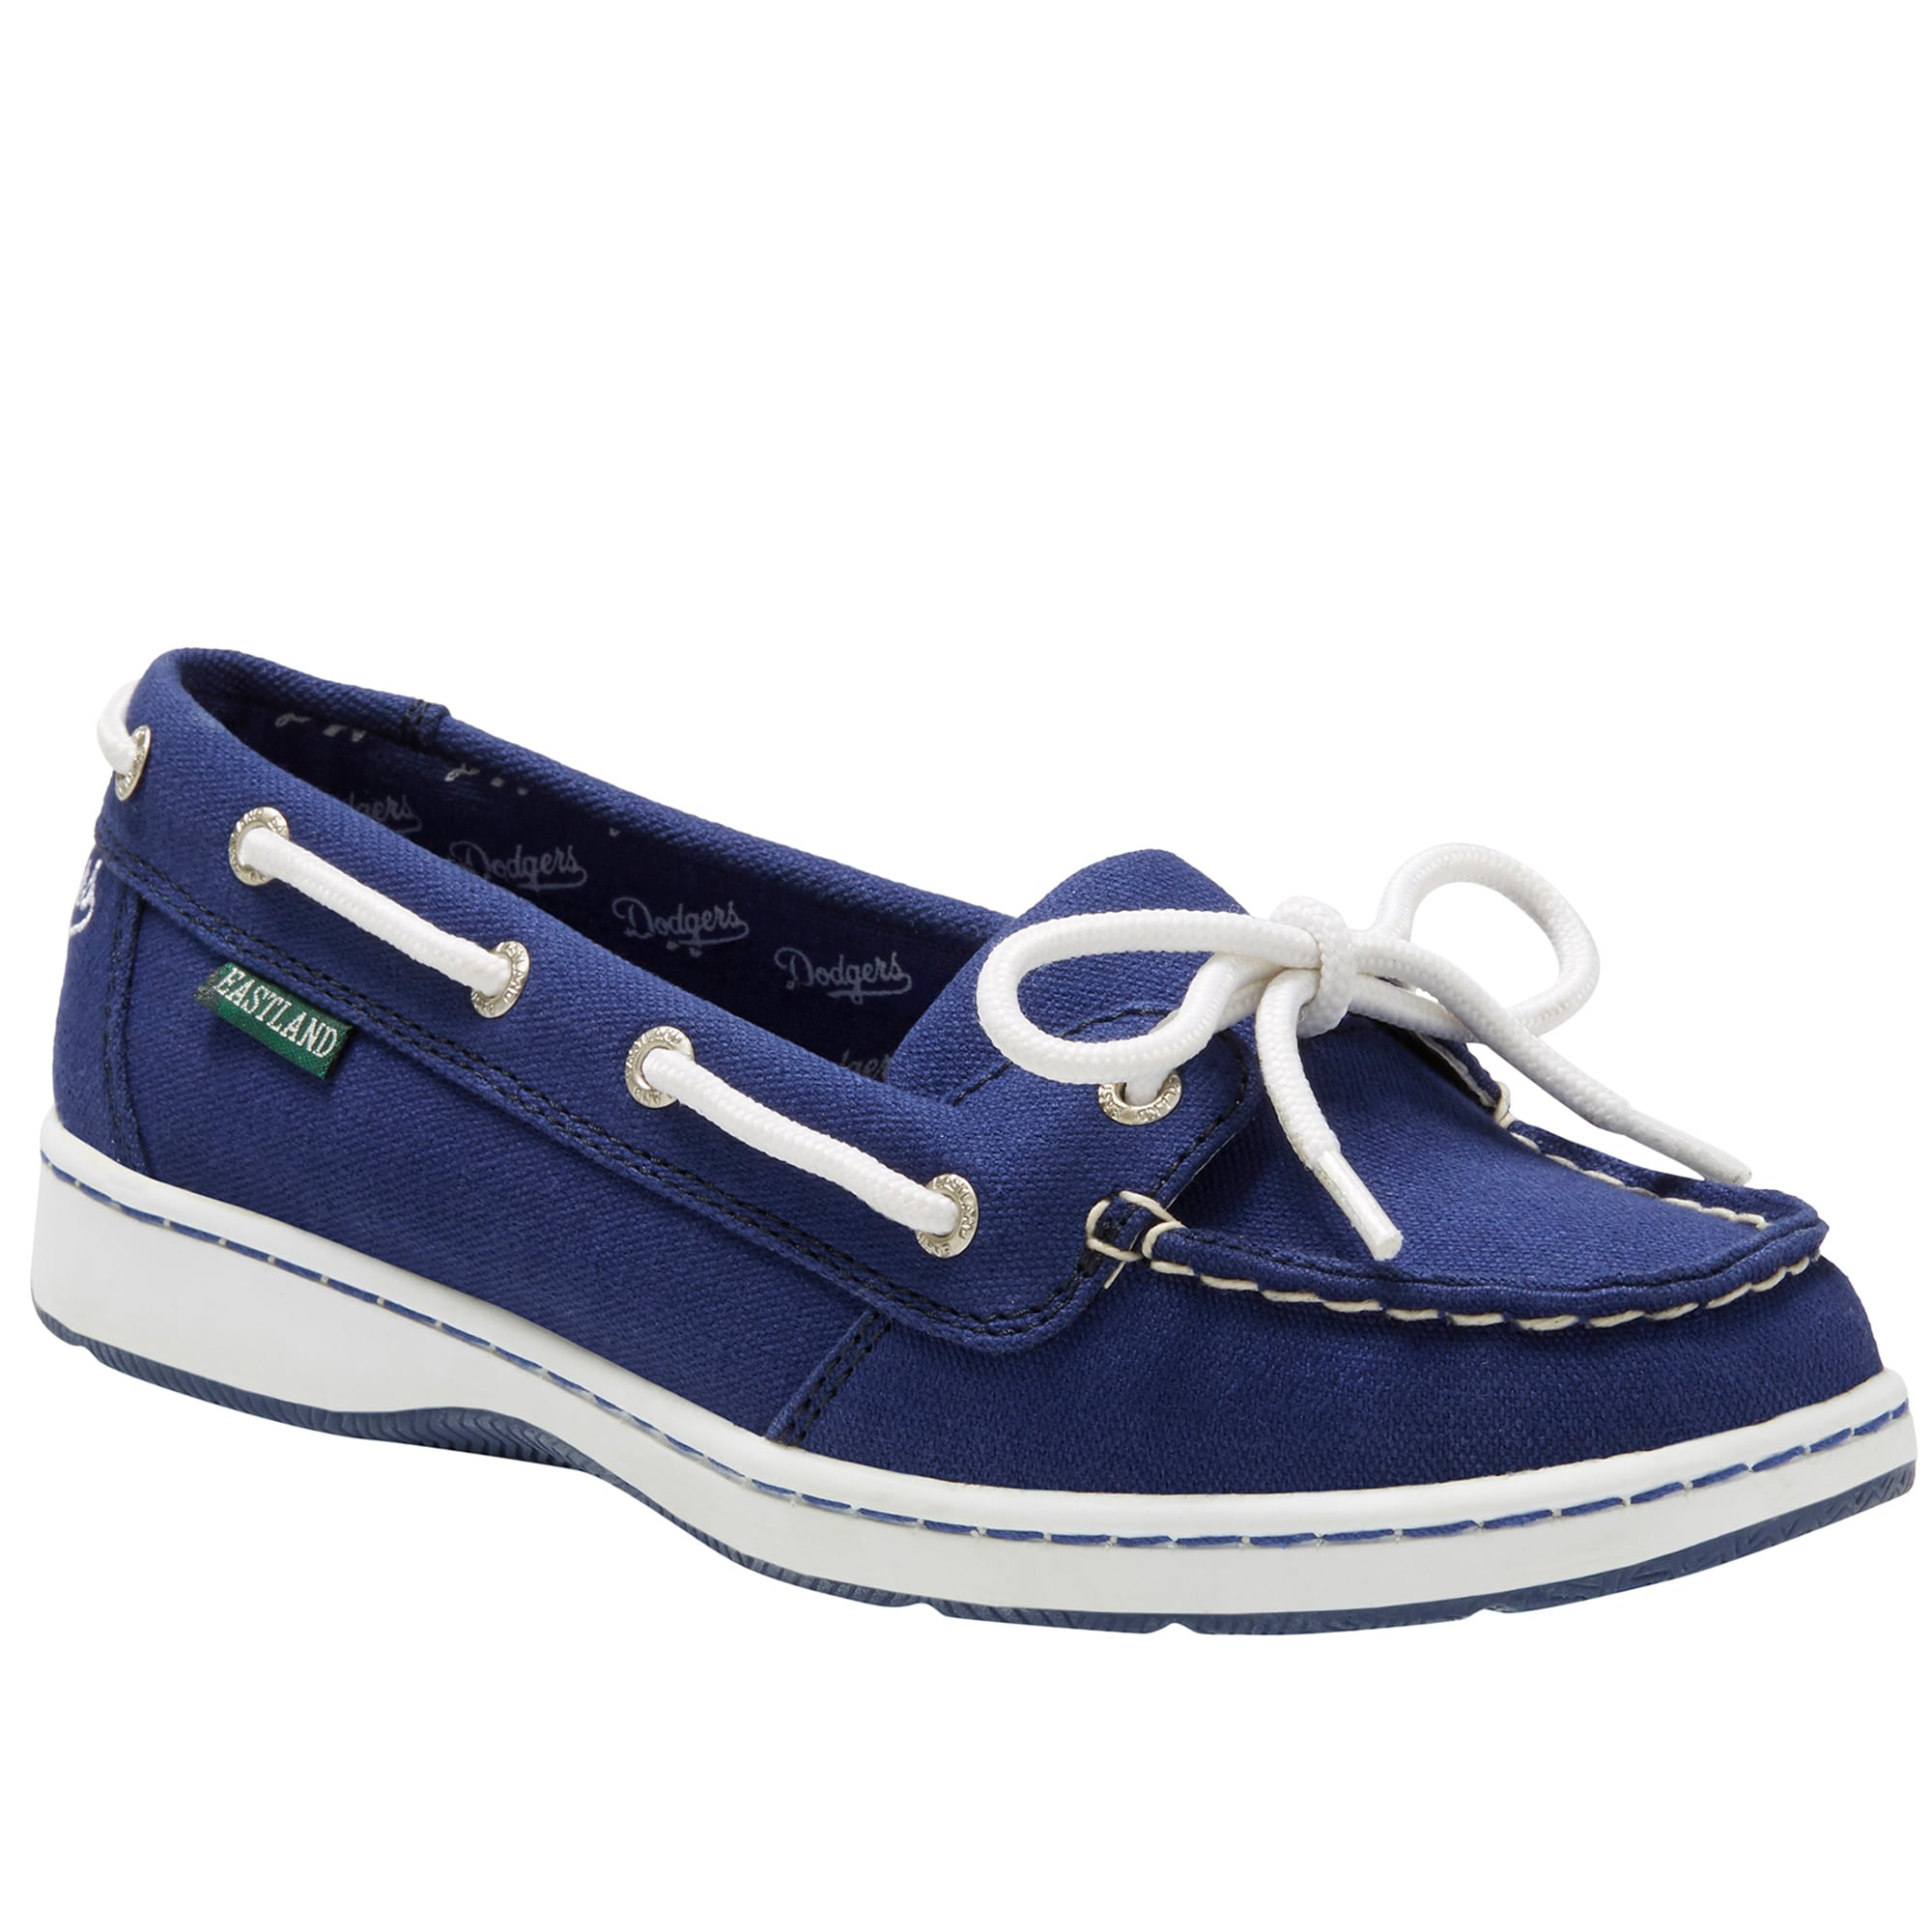 Los Angeles Dodgers Women's Sunset Boat Shoes